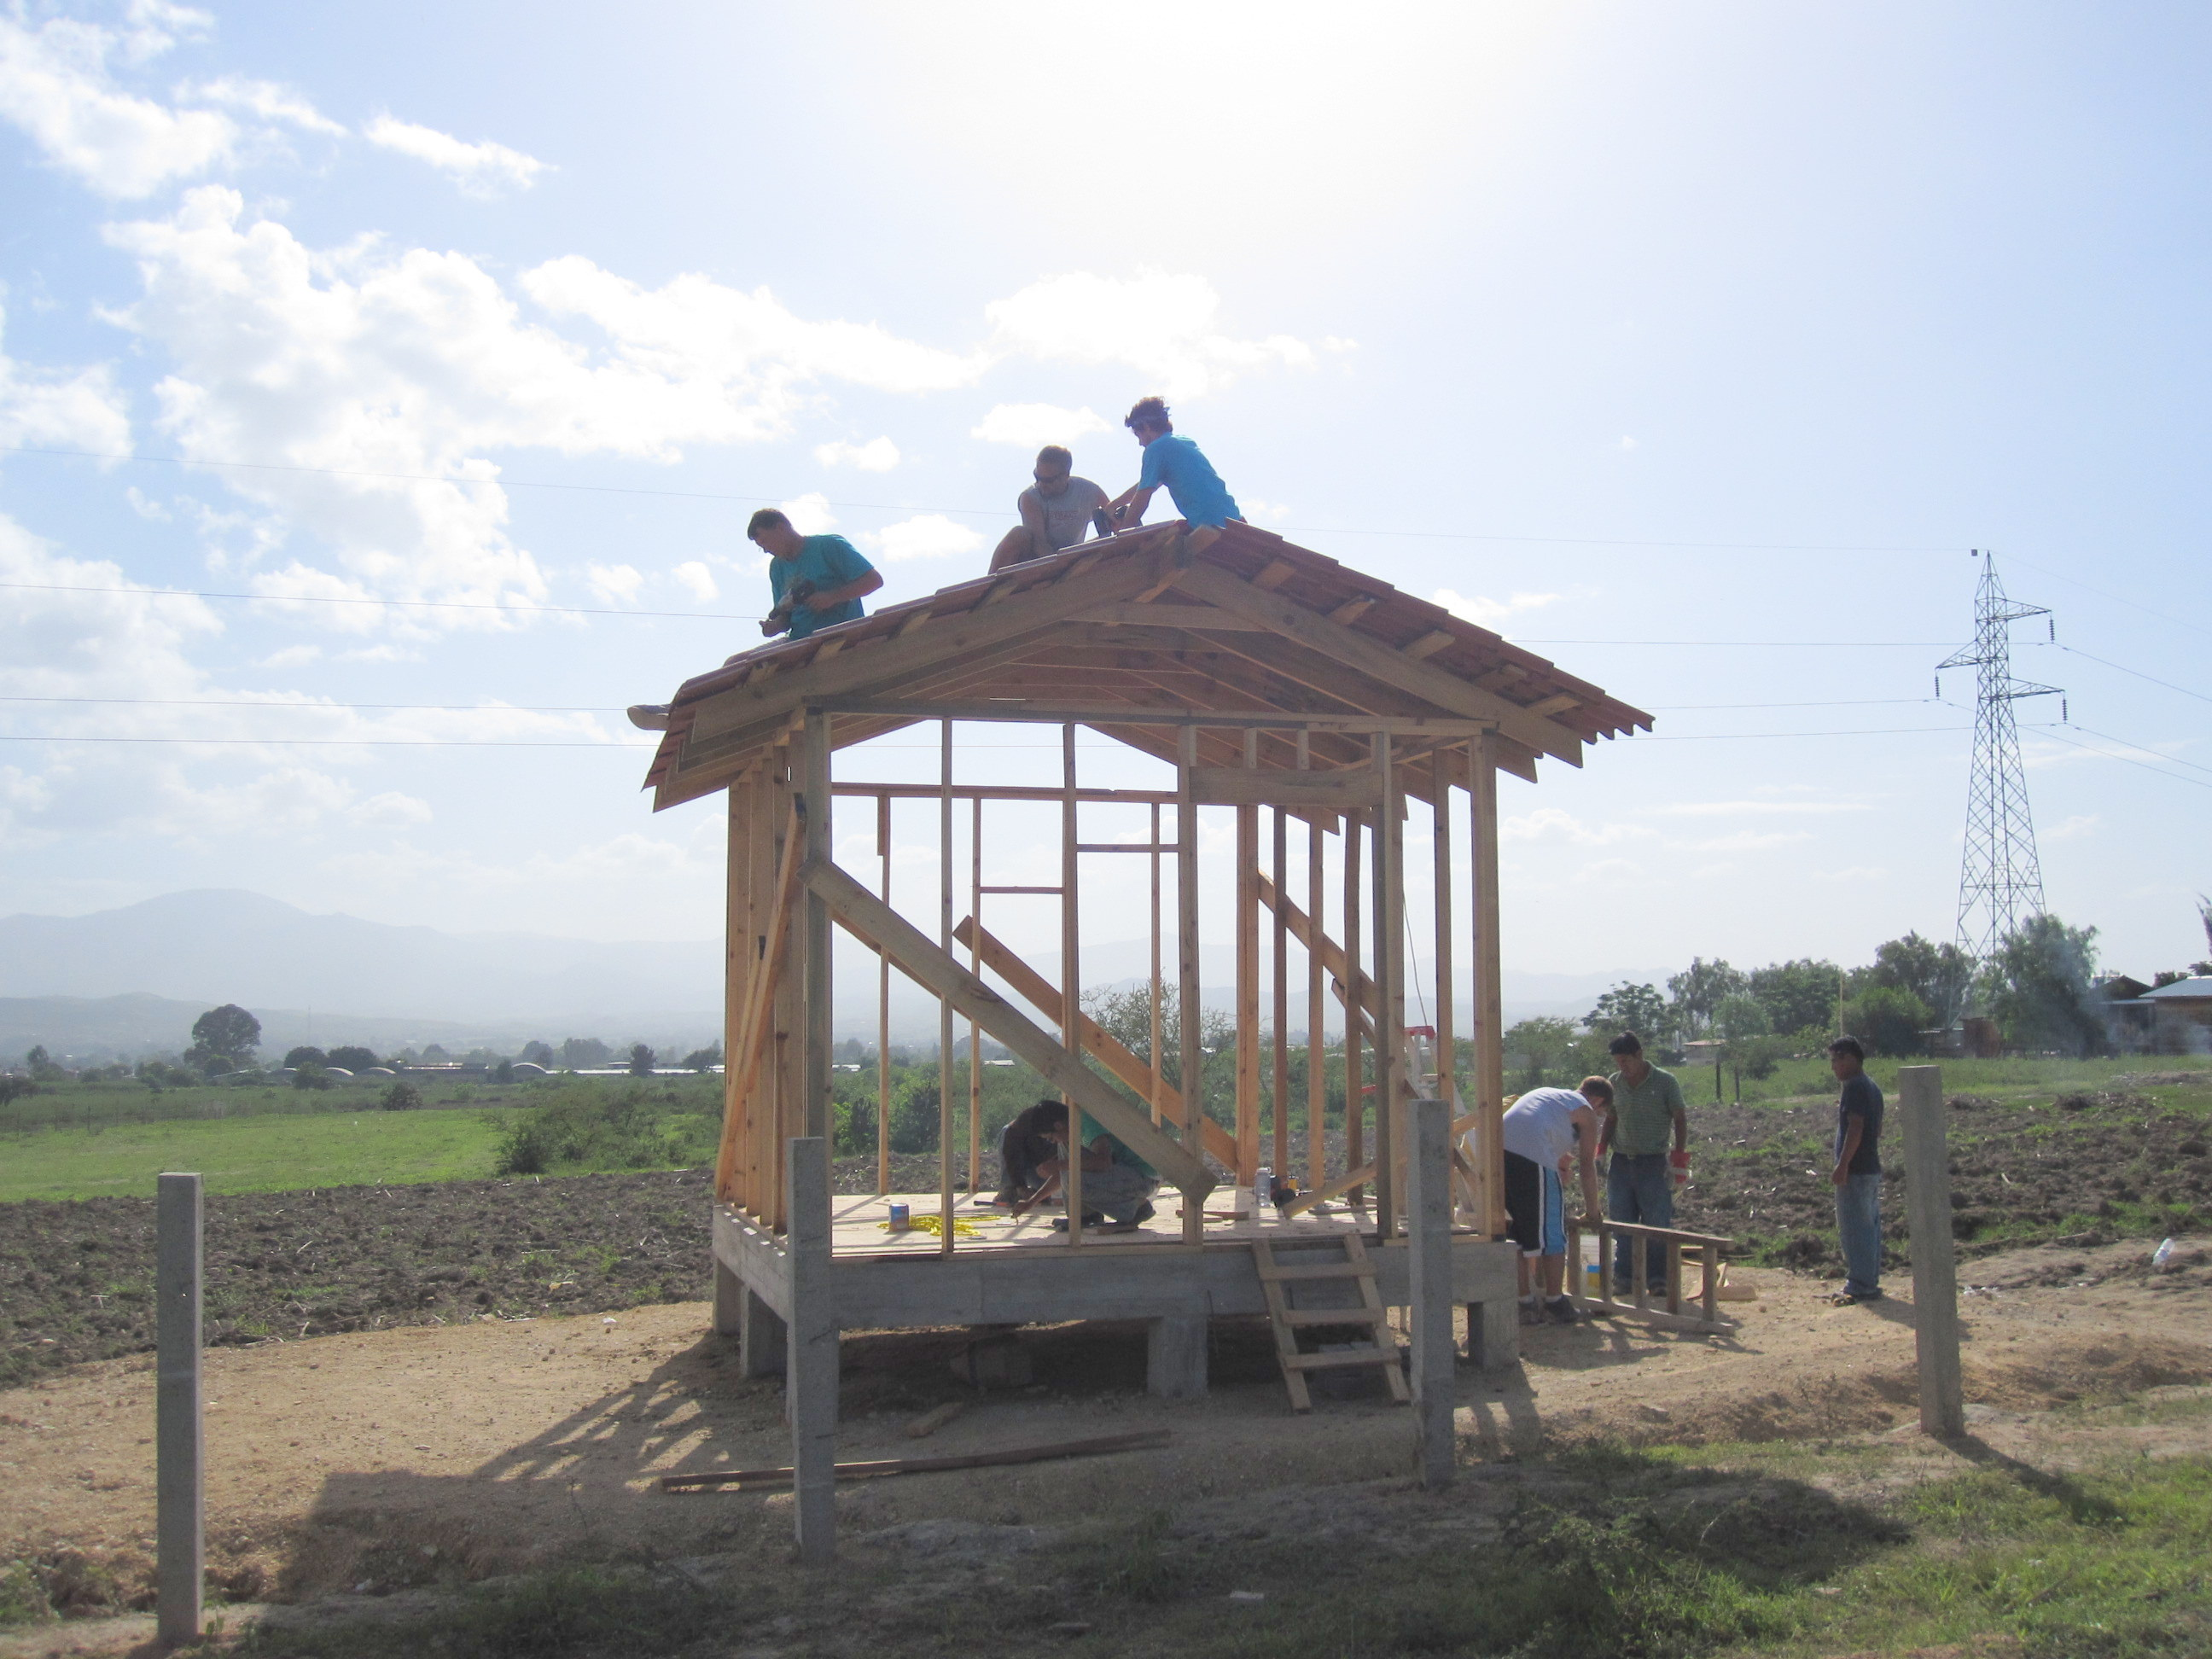 Armonia students and volunteers constructing a building